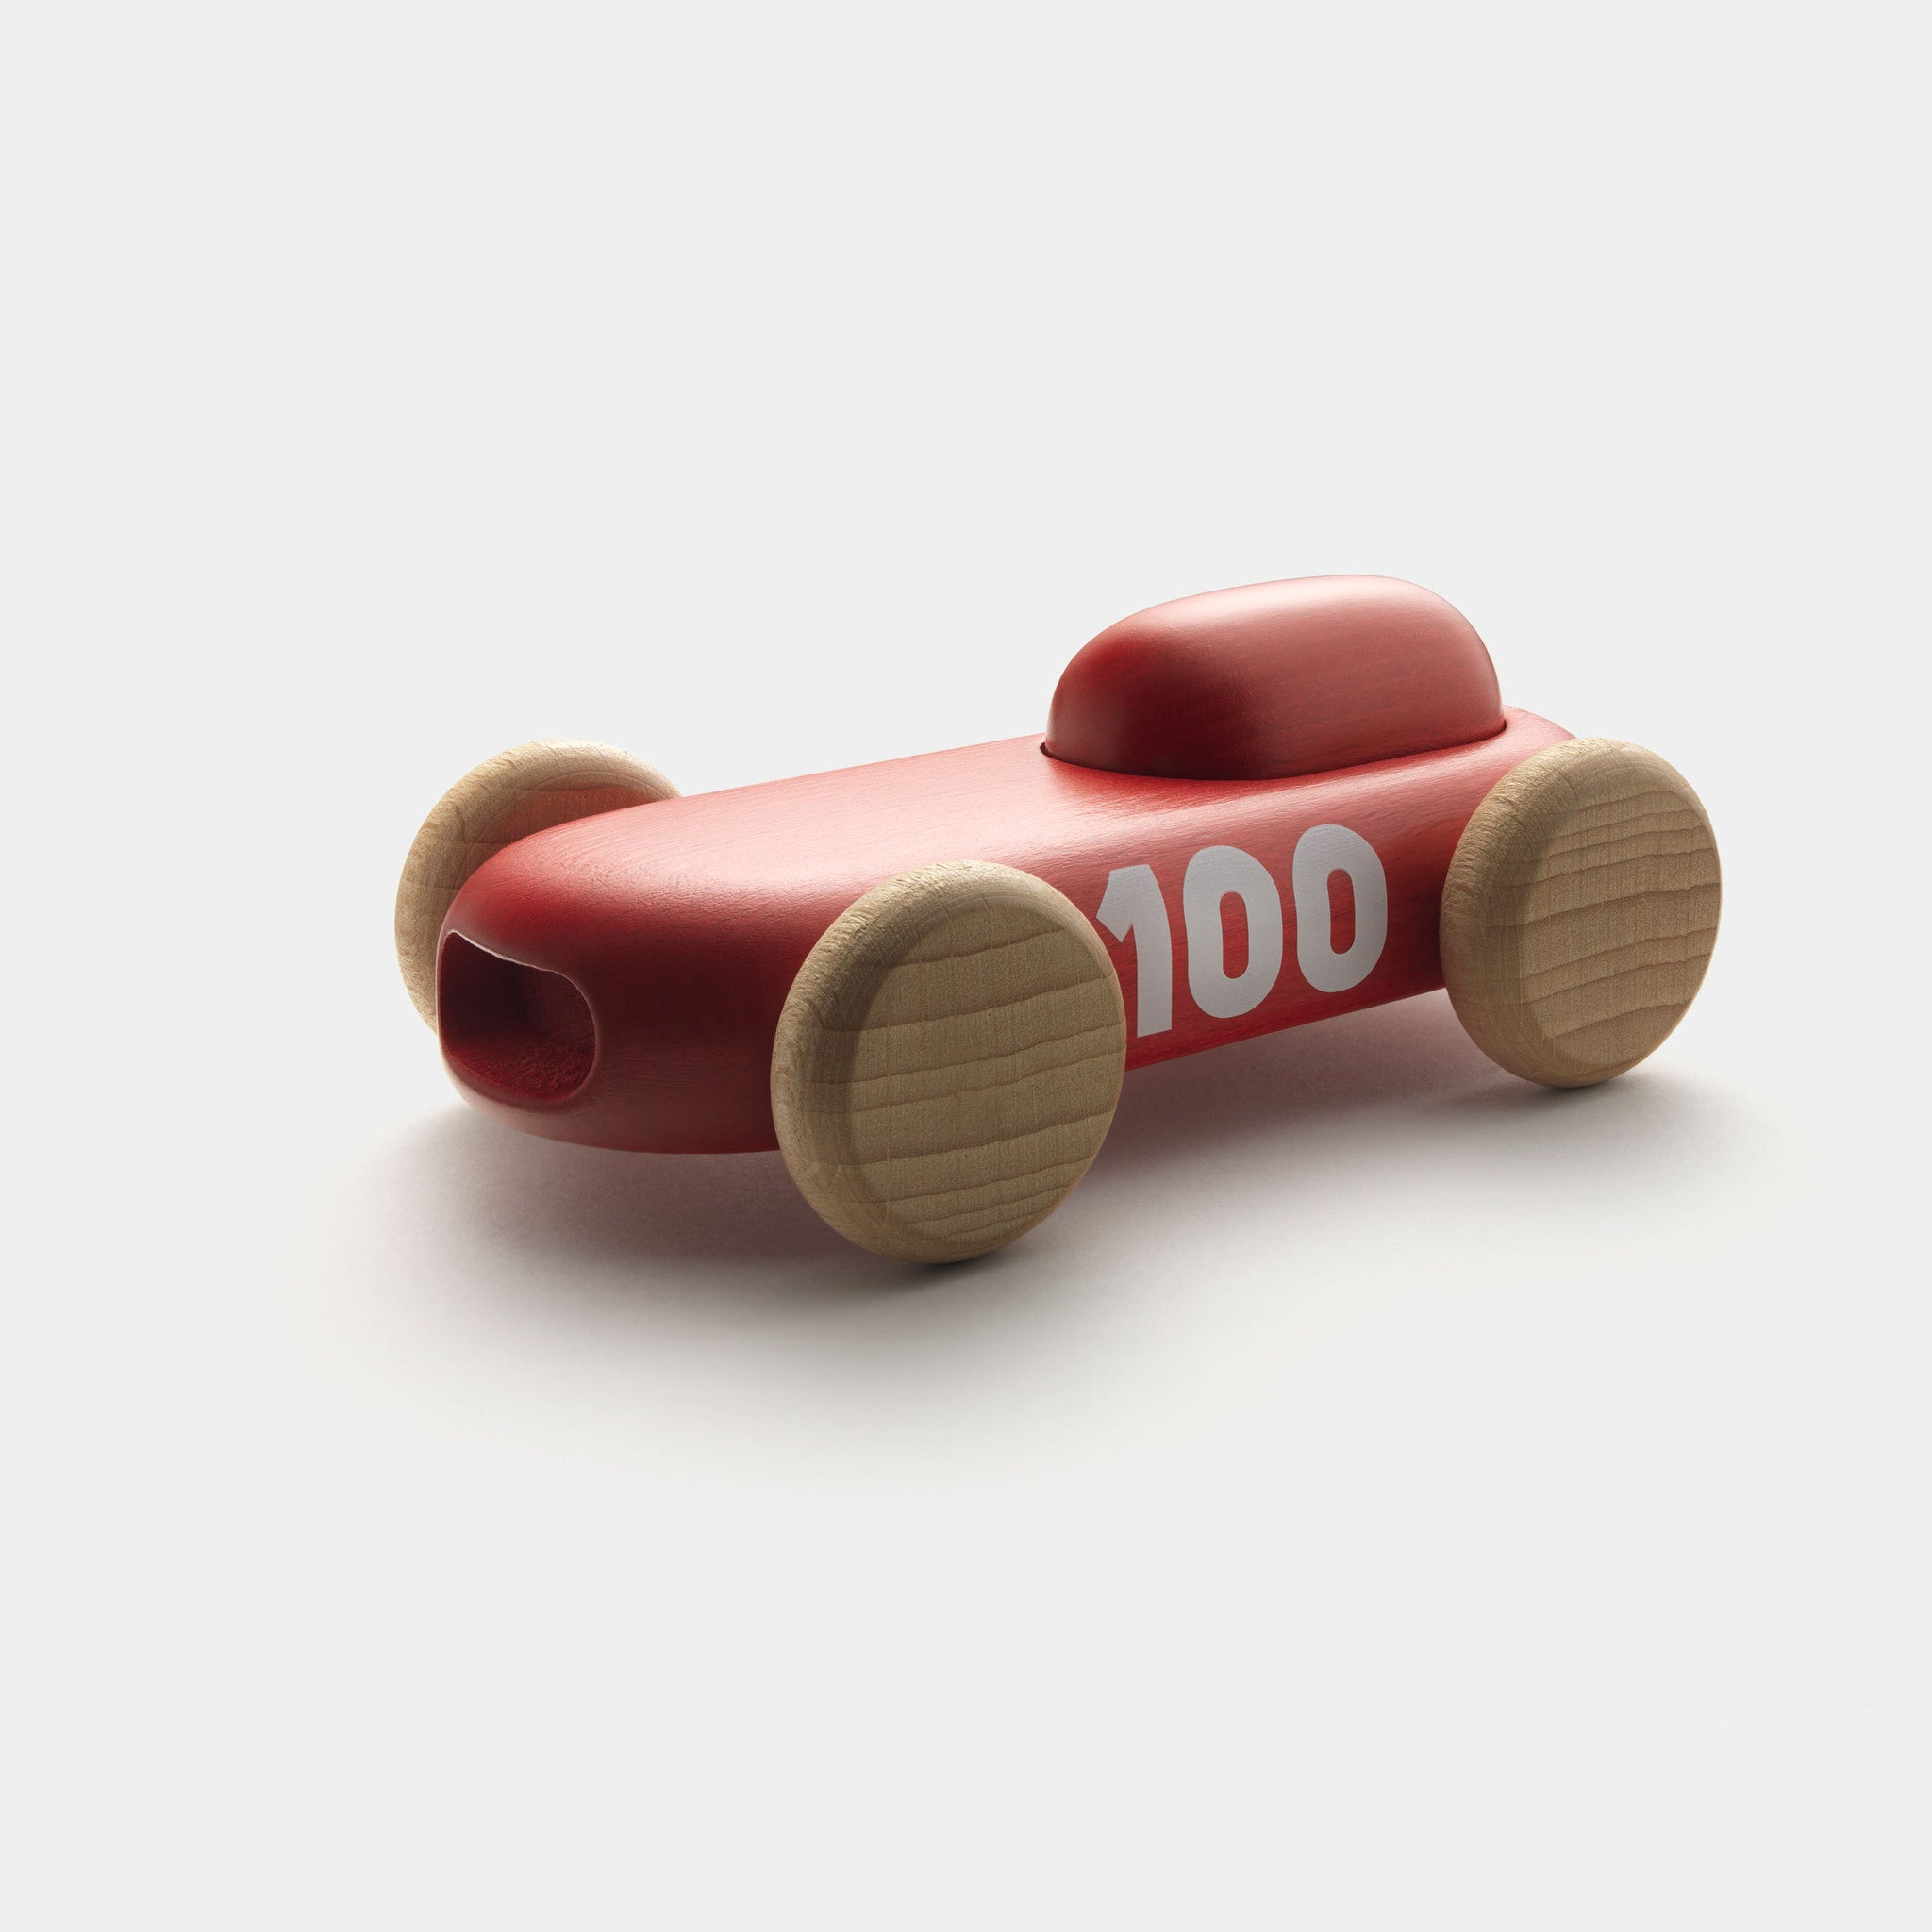 100 Racer Car — Numbered Limited Edition